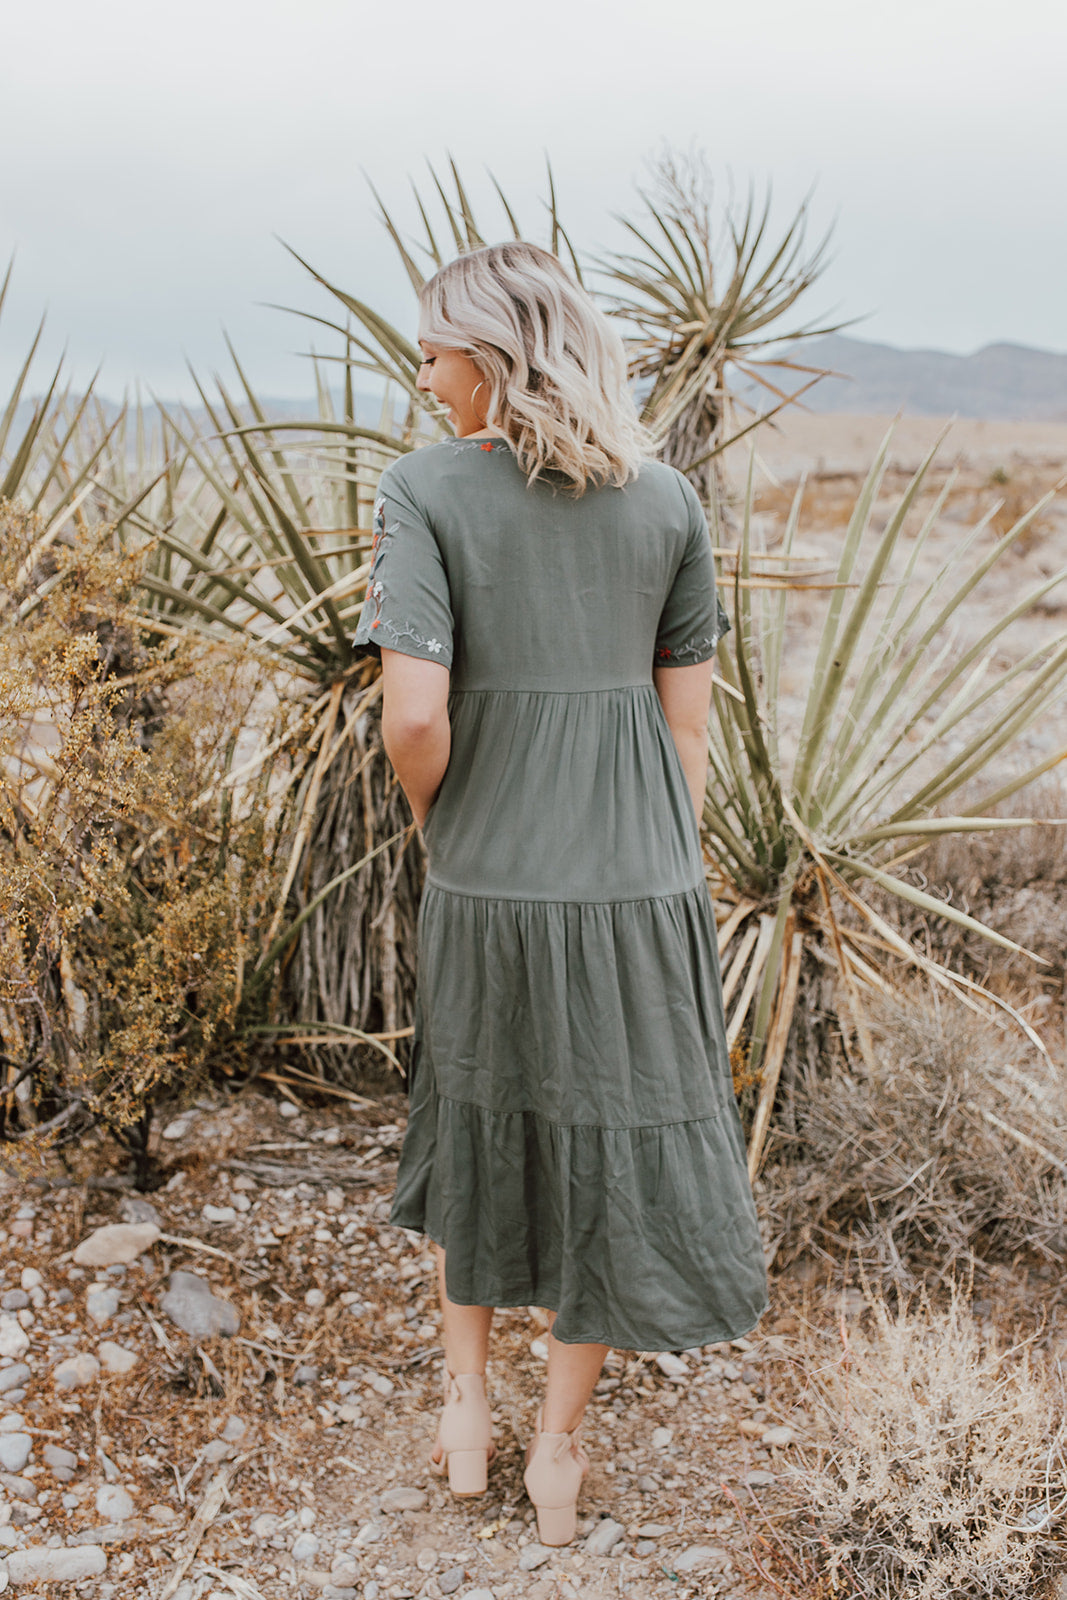 THE BEYOND WORDS EMBROIDERED MIDI DRESS IN JADE